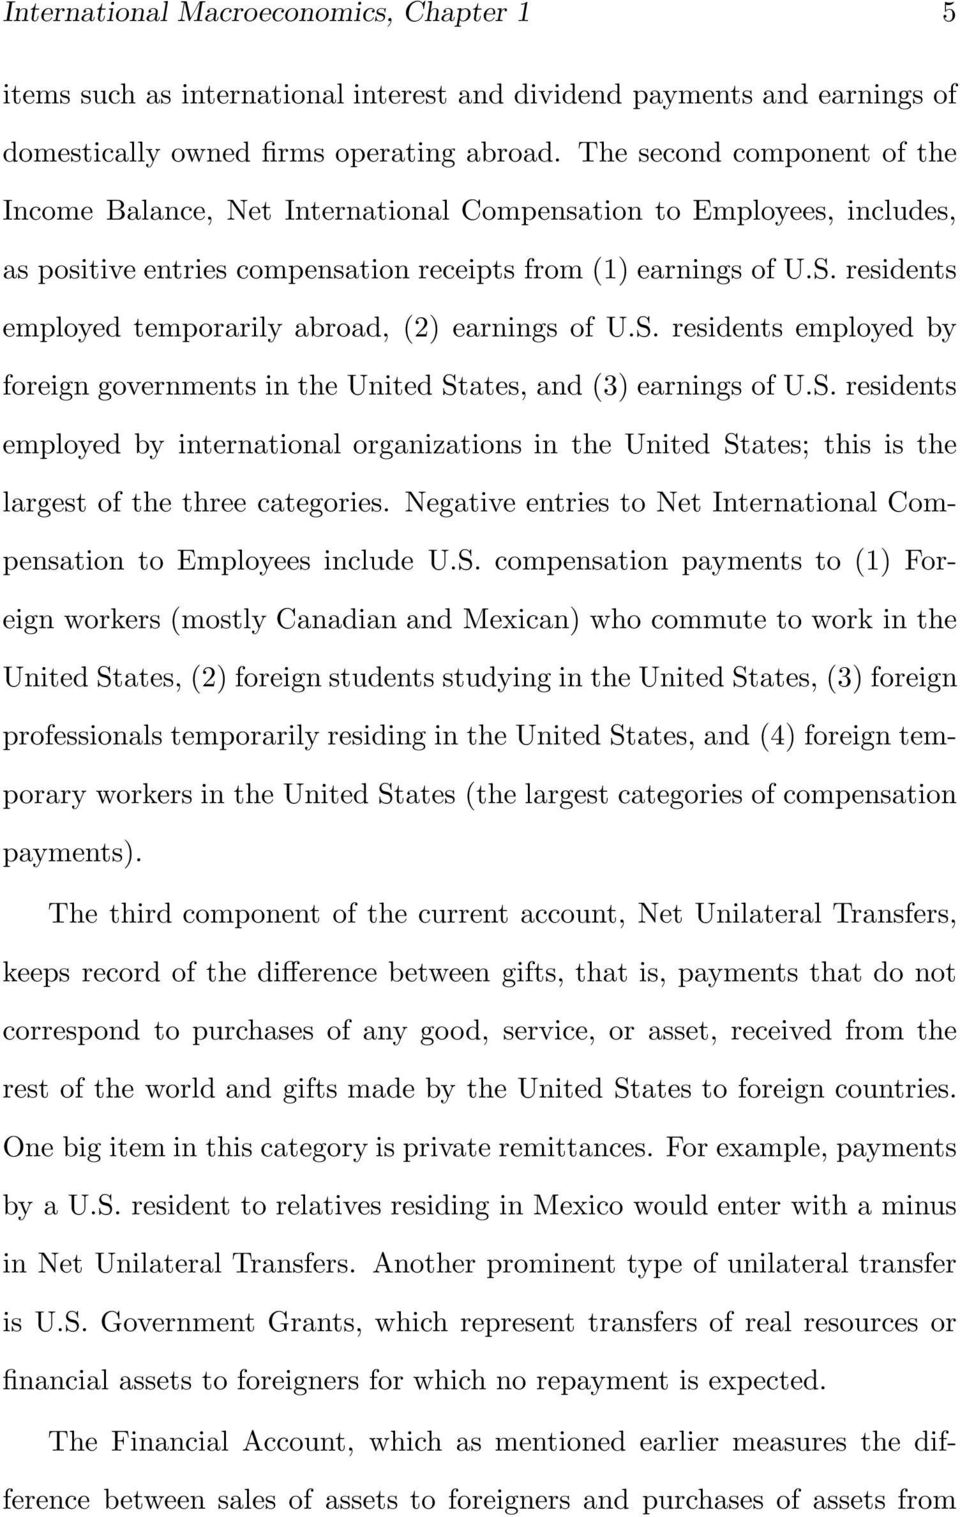 residents employed temporarily abroad, (2) earnings of U.S. residents employed by foreign governments in the United States, and (3) earnings of U.S. residents employed by international organizations in the United States; this is the largest of the three categories.